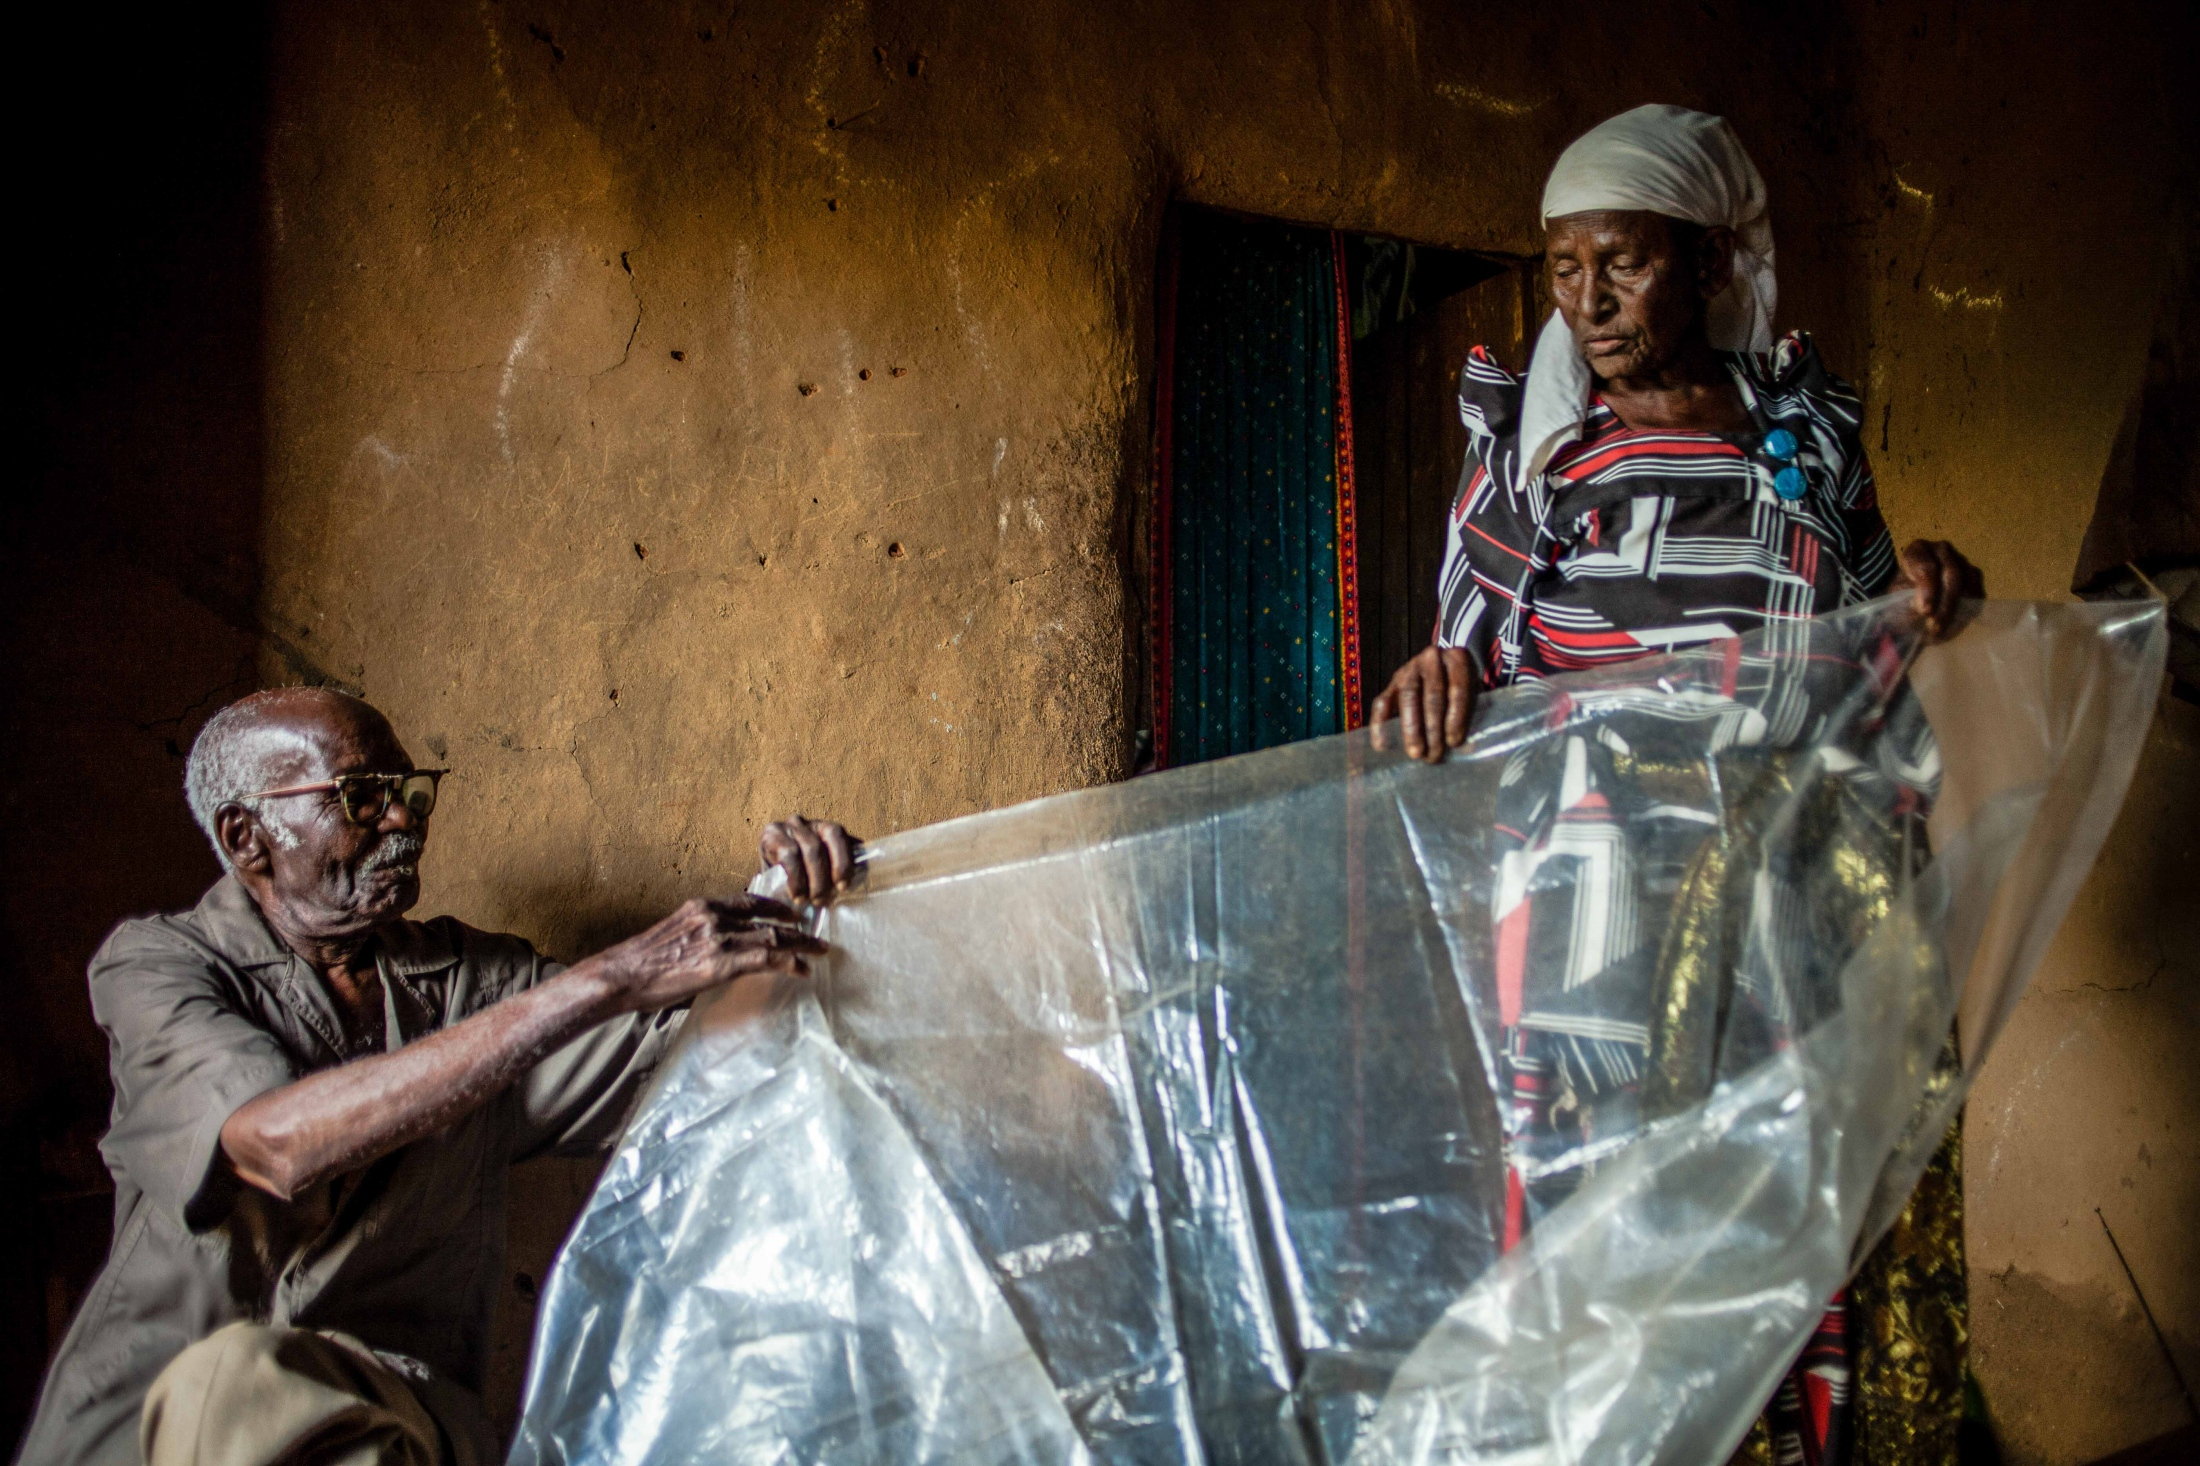 Masa 81, shows the only tool she has available when assisting in deliveries – a plastic sheet that she lays down in her living room in Bududa to protect infants from the unsterilized ground. This is a sharp contrast to the tools used in deliveries at the rural health center in Bududa, Uganda. In 2010, the government banned the practice of Traditional Birth Attendants (TBAs), but did little to improve modern maternal health services in rural areas of Uganda. While Uganda's maternal mortality rate has declined in recent years, women in rural areas still suffer disproportionately from a lack of medical services. In northern Uganda, a woman has a one-in-25 lifetime chance of dying in childbirth.